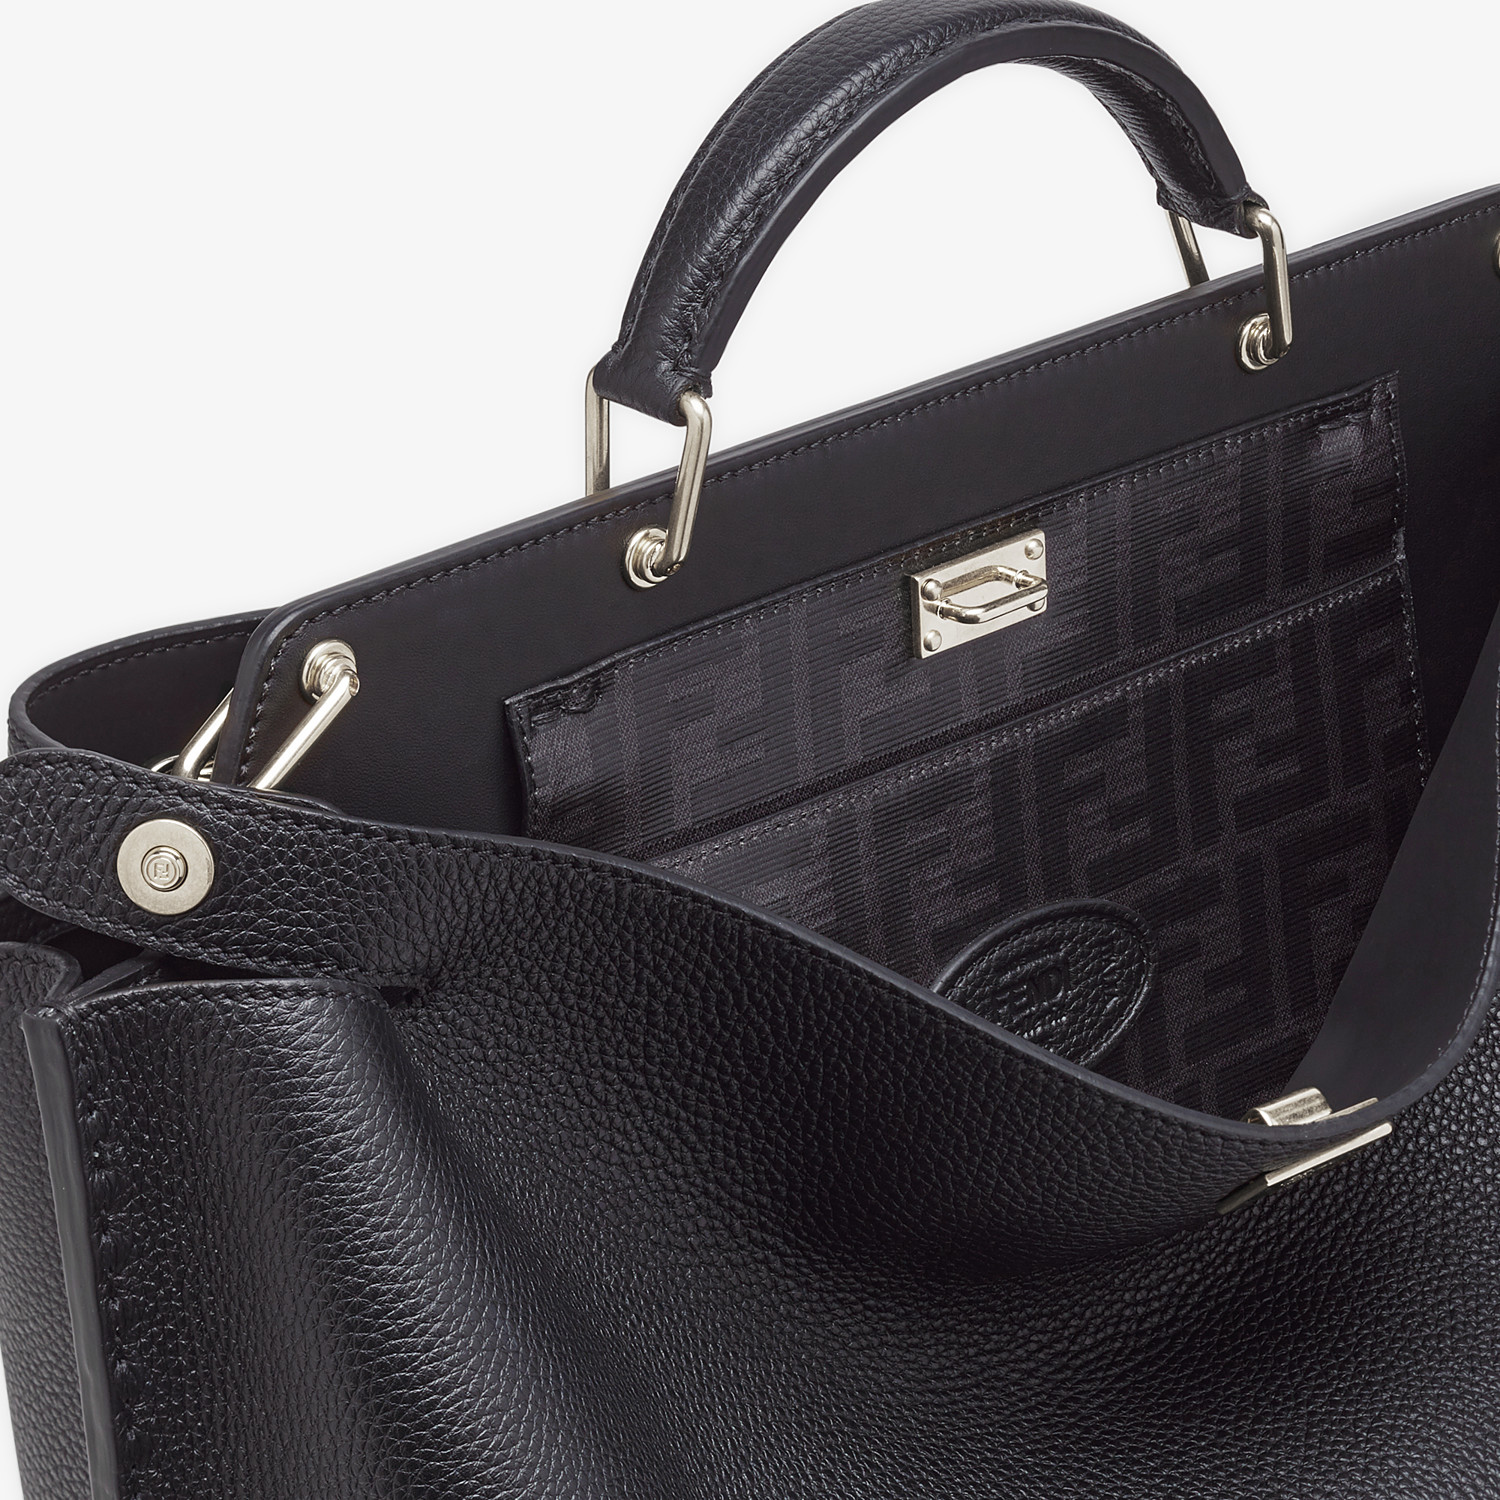 FENDI PEEKABOO ICONIC ESSENTIAL - Sac en cuir noir - view 5 detail